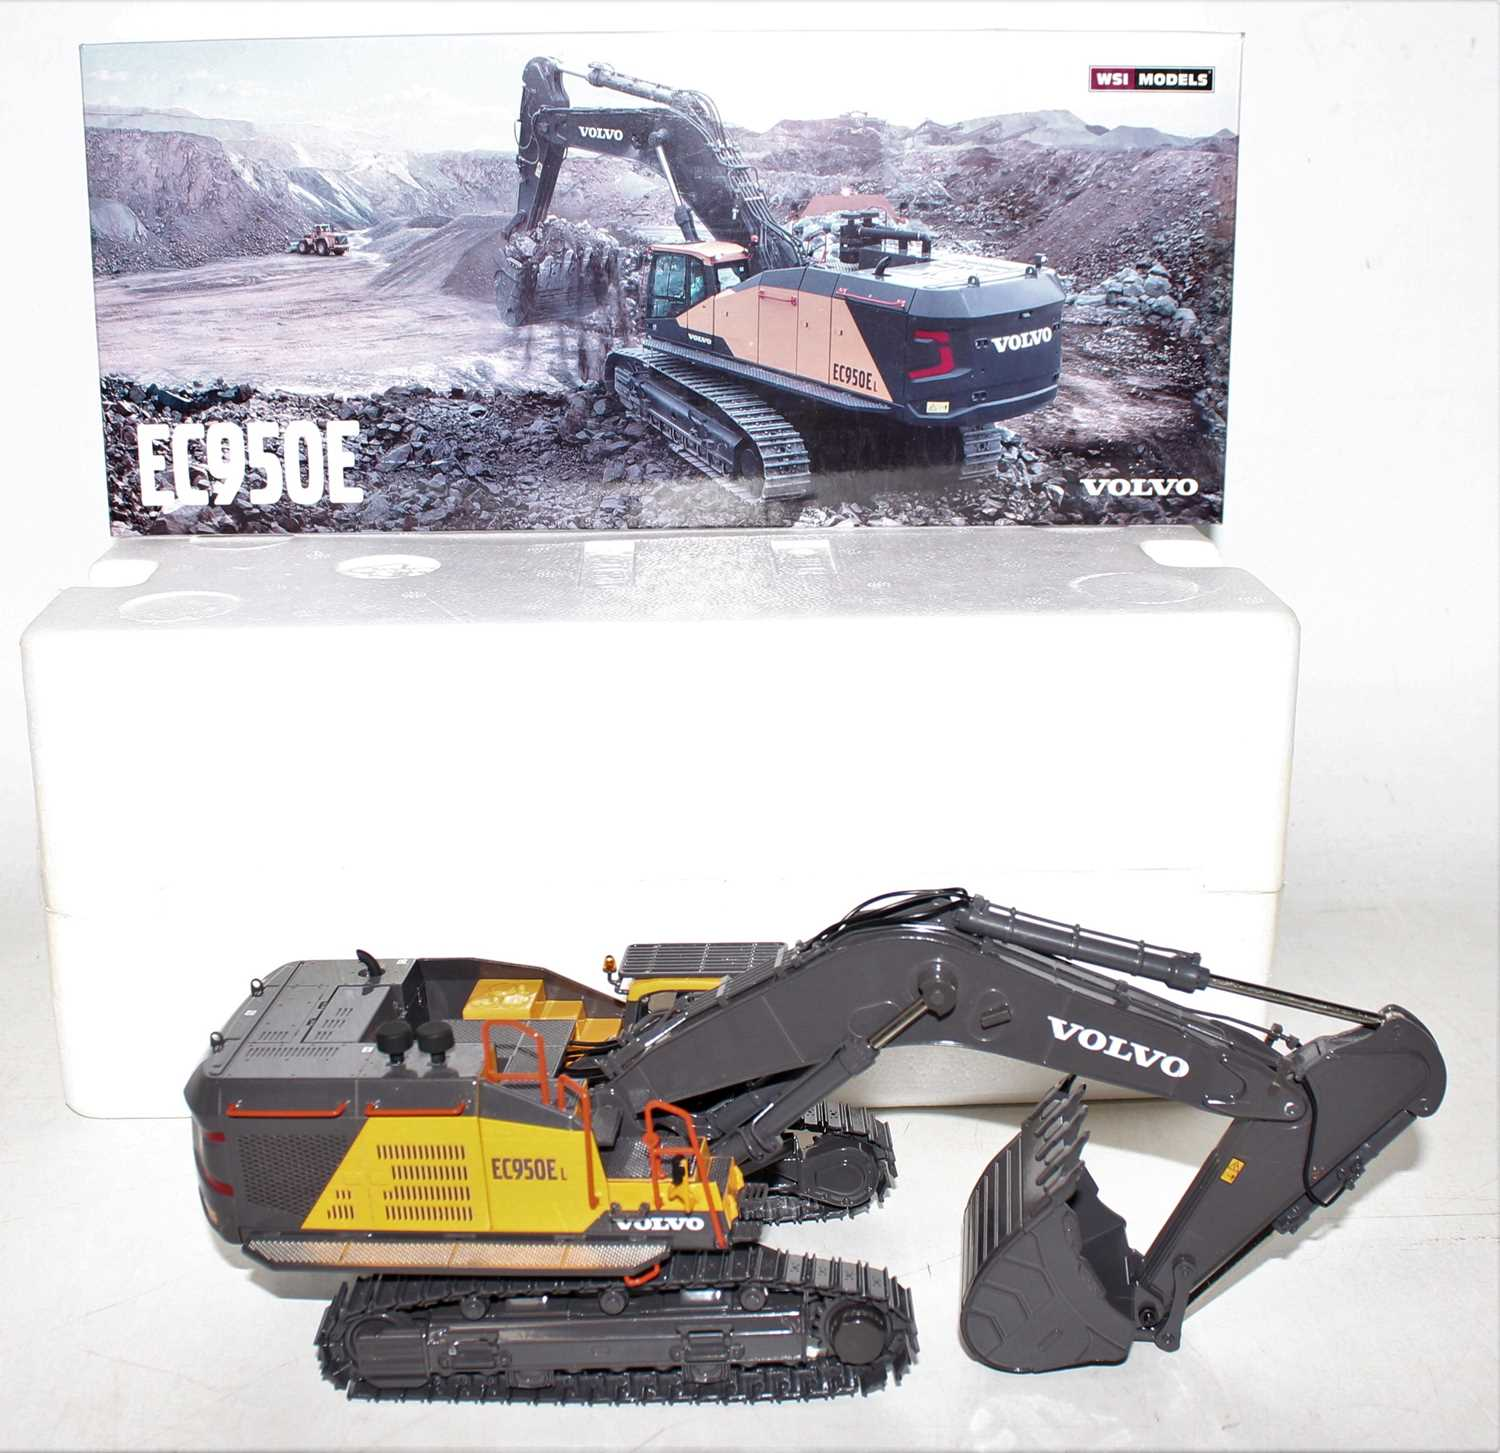 A WSI Models 1/50 scale model No. 61-2001 boxed diecast model of a Volvo EC950E tracked excavator - Image 2 of 2